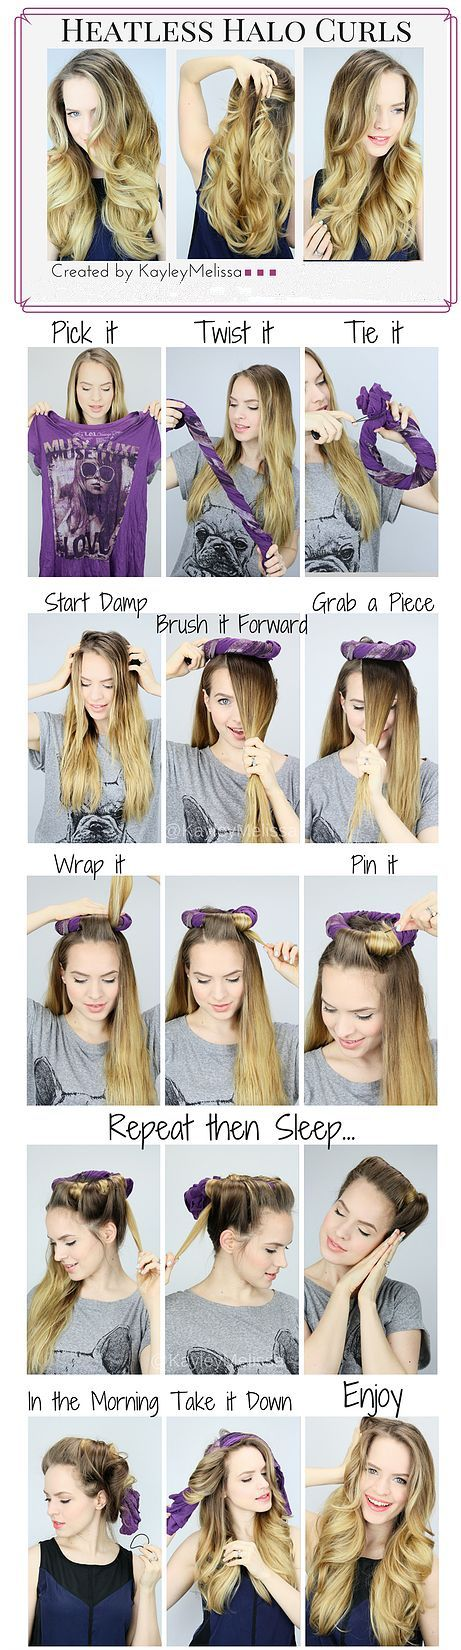 Here's a new hair curly tip from Kayley Melissa. Beauty7 tried before, and it works and looks natural style. No heat iron, just need a T-shirt. Would you like to try tonight? Any cute easy style way, please @beauty7 we will post your way to friends allover world♥